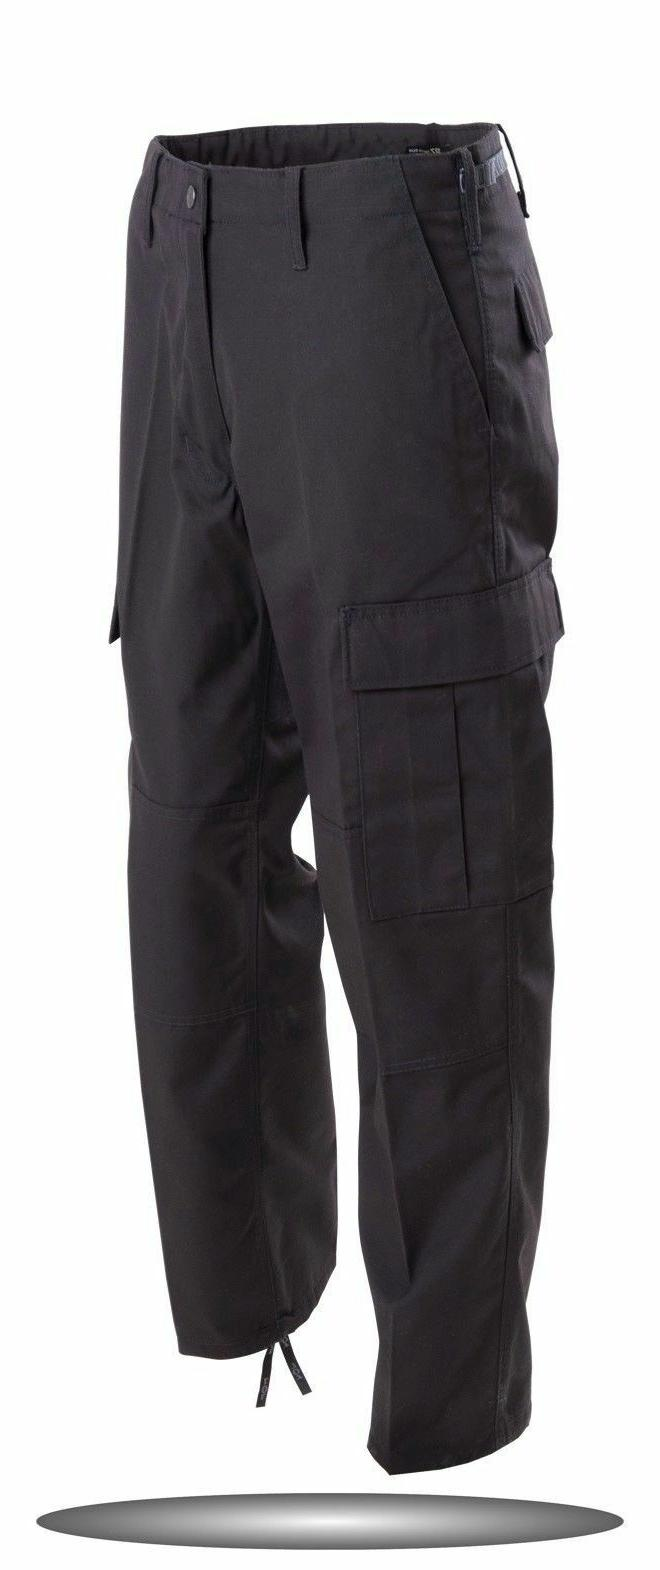 BLACK BDU PANTS MILITARY STYLE PANTS ARMY NAVY SWAT CARGO SI